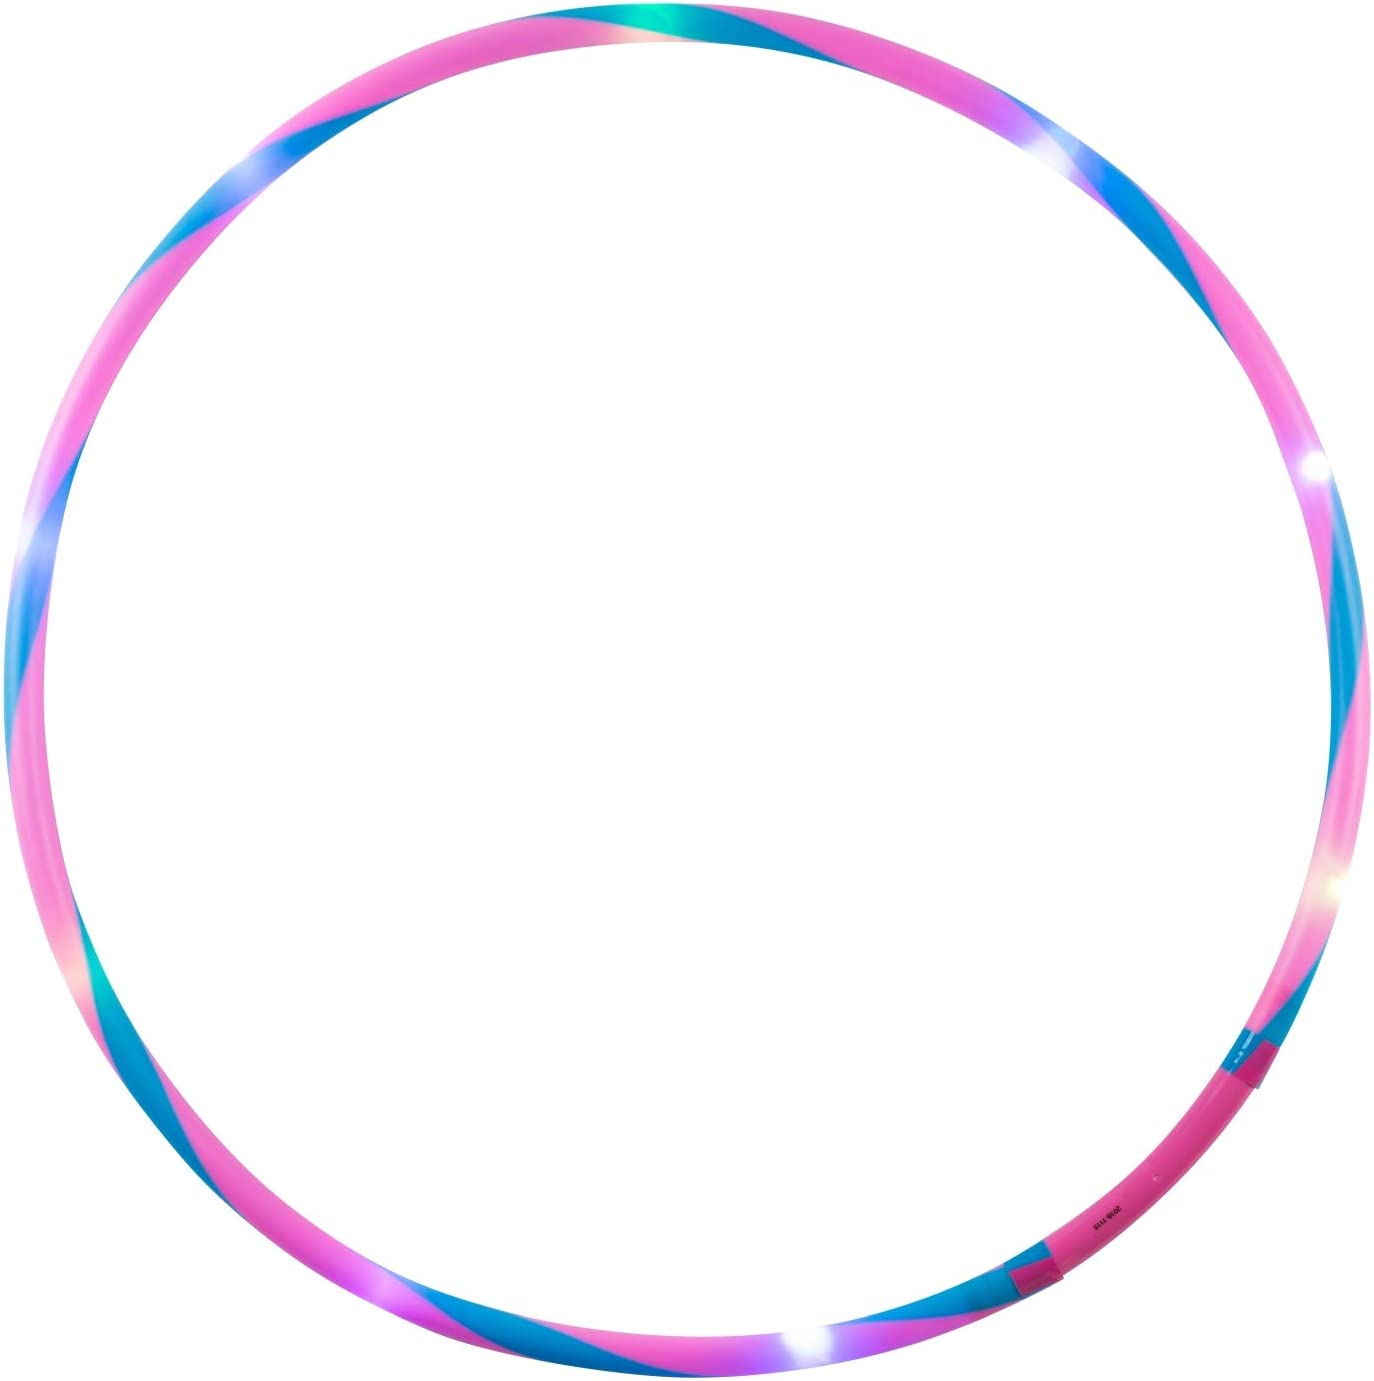 Fitness and Gymnastics Pink//Blue Sports Hoop with Light for Children from 4 Years and Adults alldoro 63005 Fun Diameter 72 cm 11 LEDs Hula